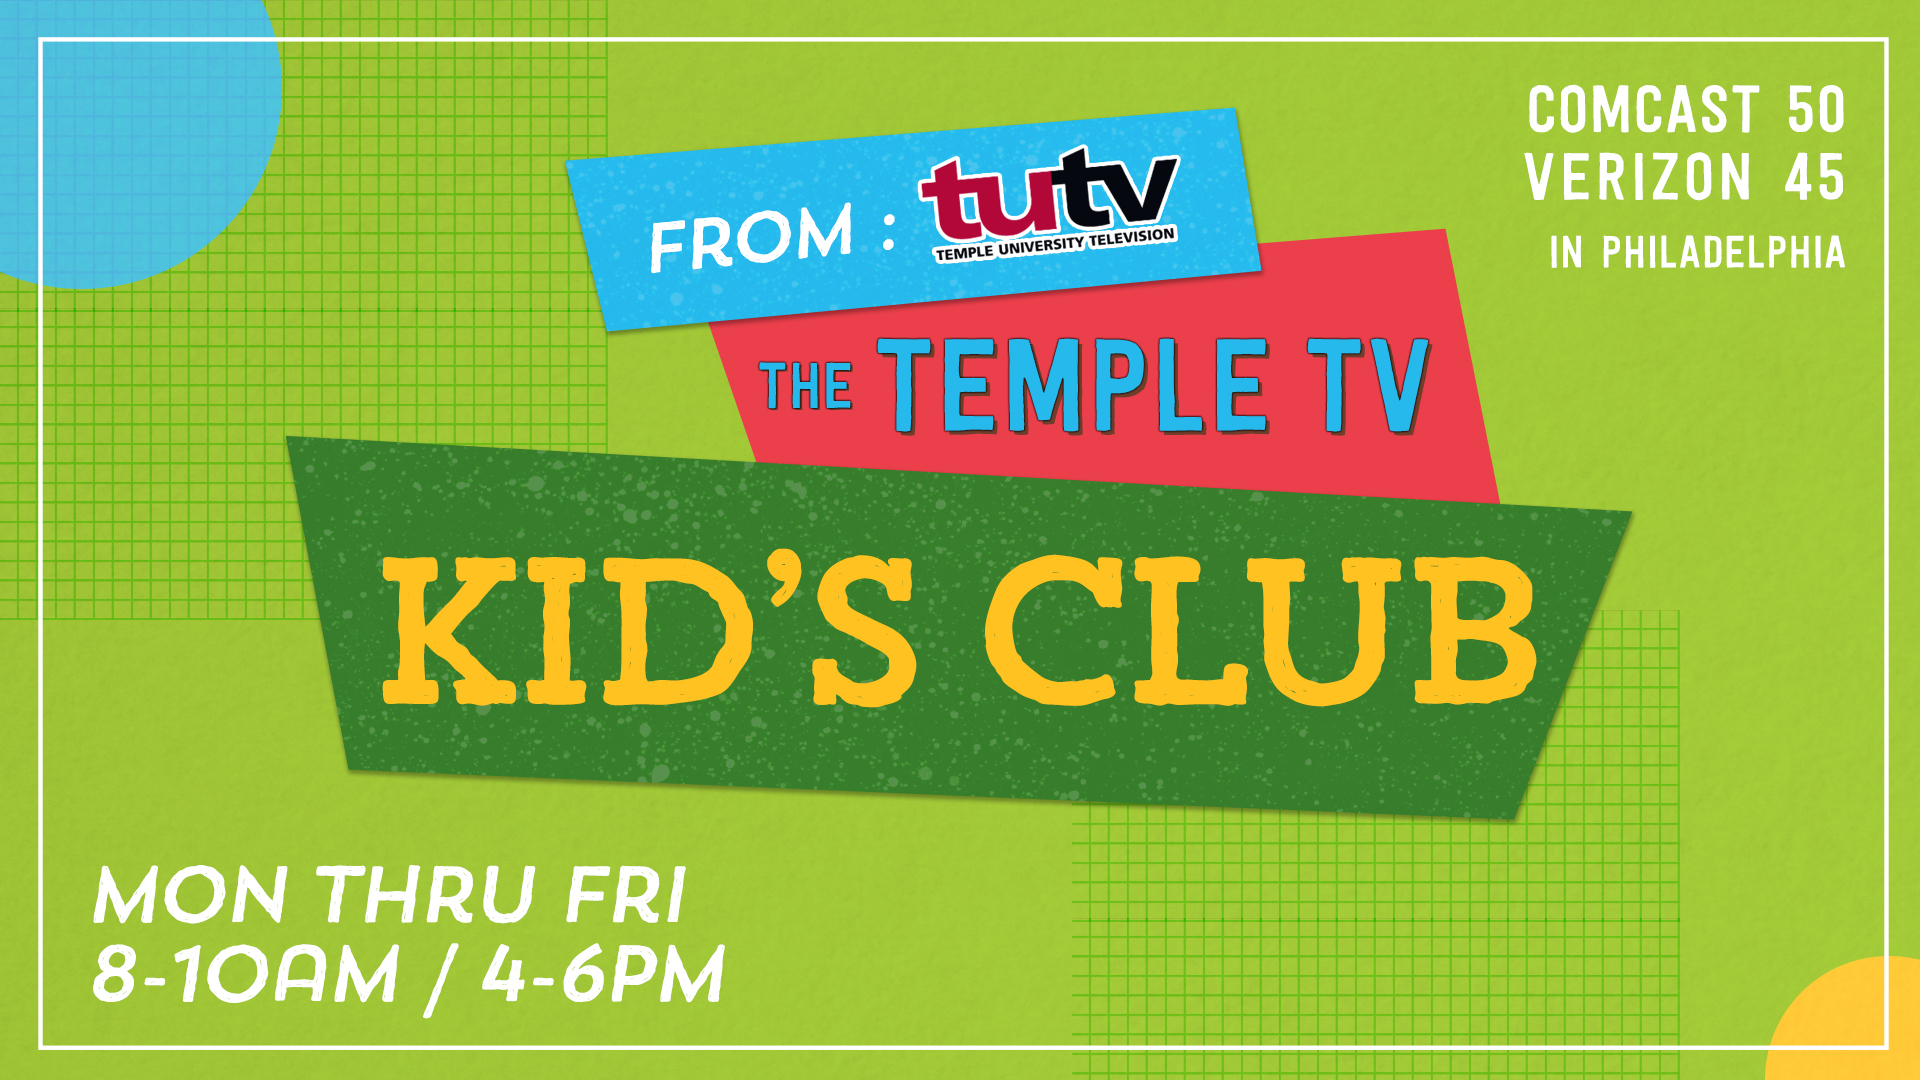 From TUTV, the Temple TV Kids Club